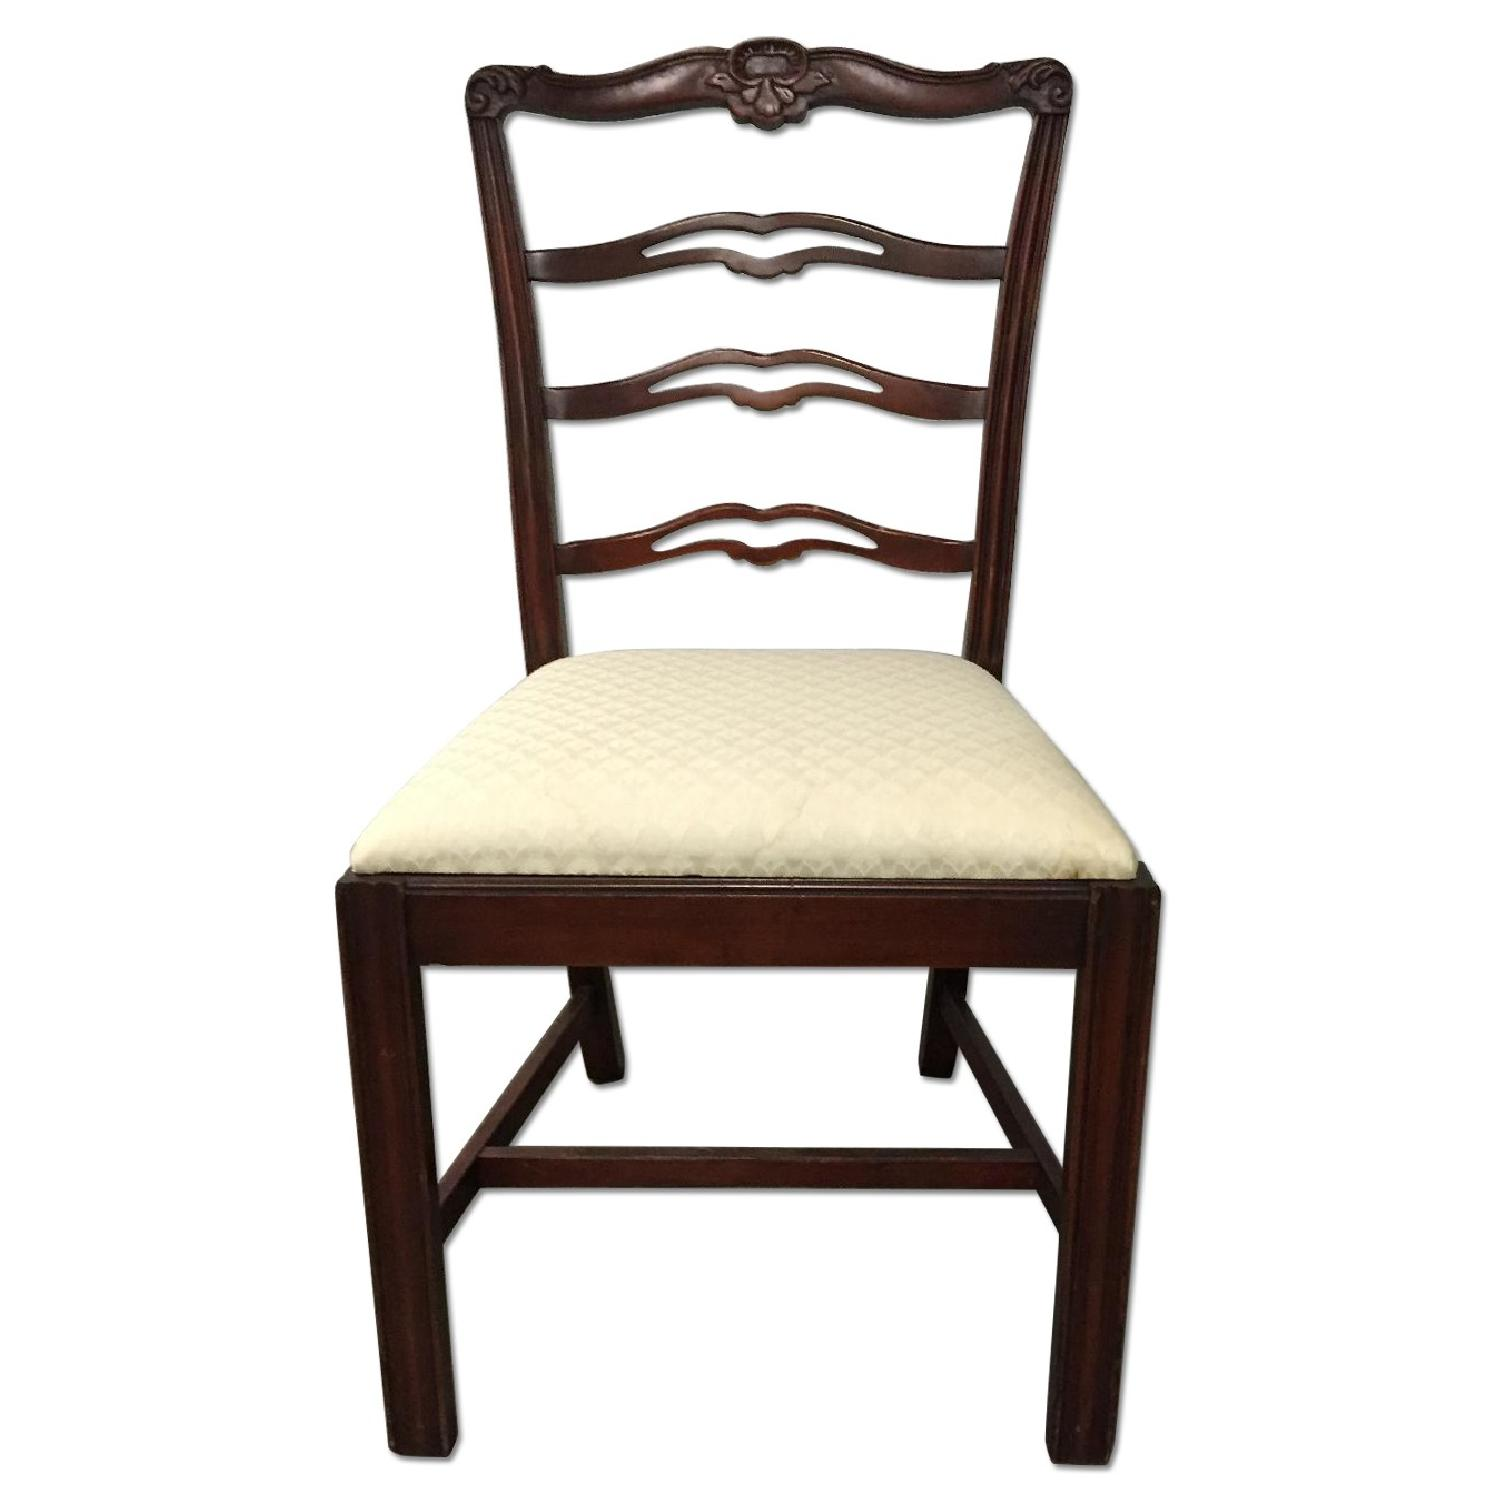 Antique Dining Room Chairs w/ Cherry Wood Frames & Custom Seat Upholstery - Set of 5 - image-0